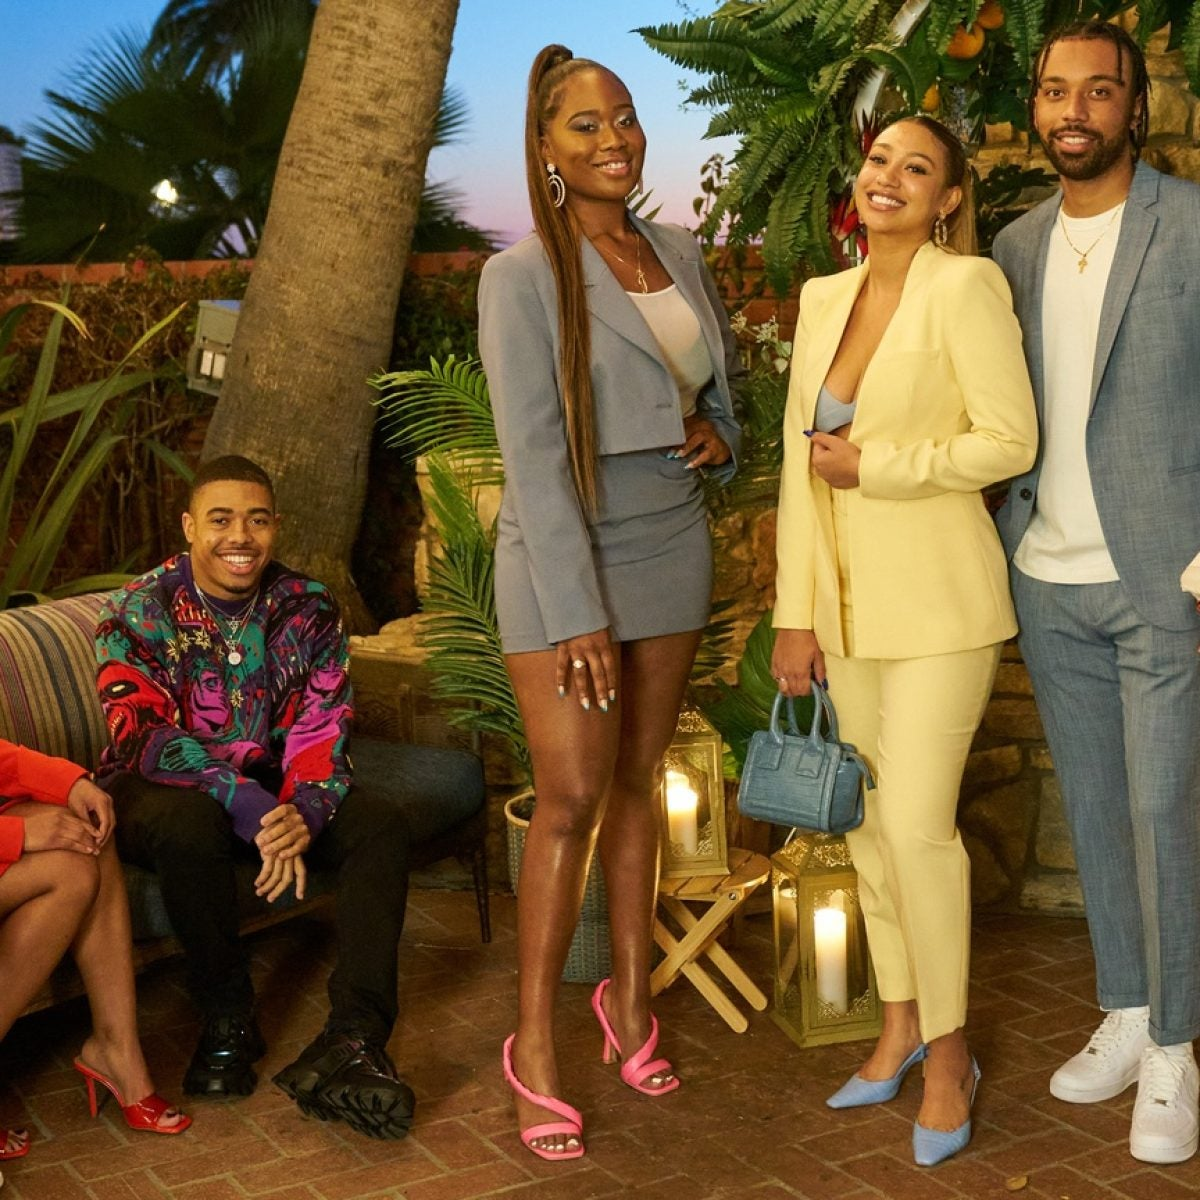 Meet The Faces Of Issa Rae's New Reality Show 'Sweet Life: Los Angeles'